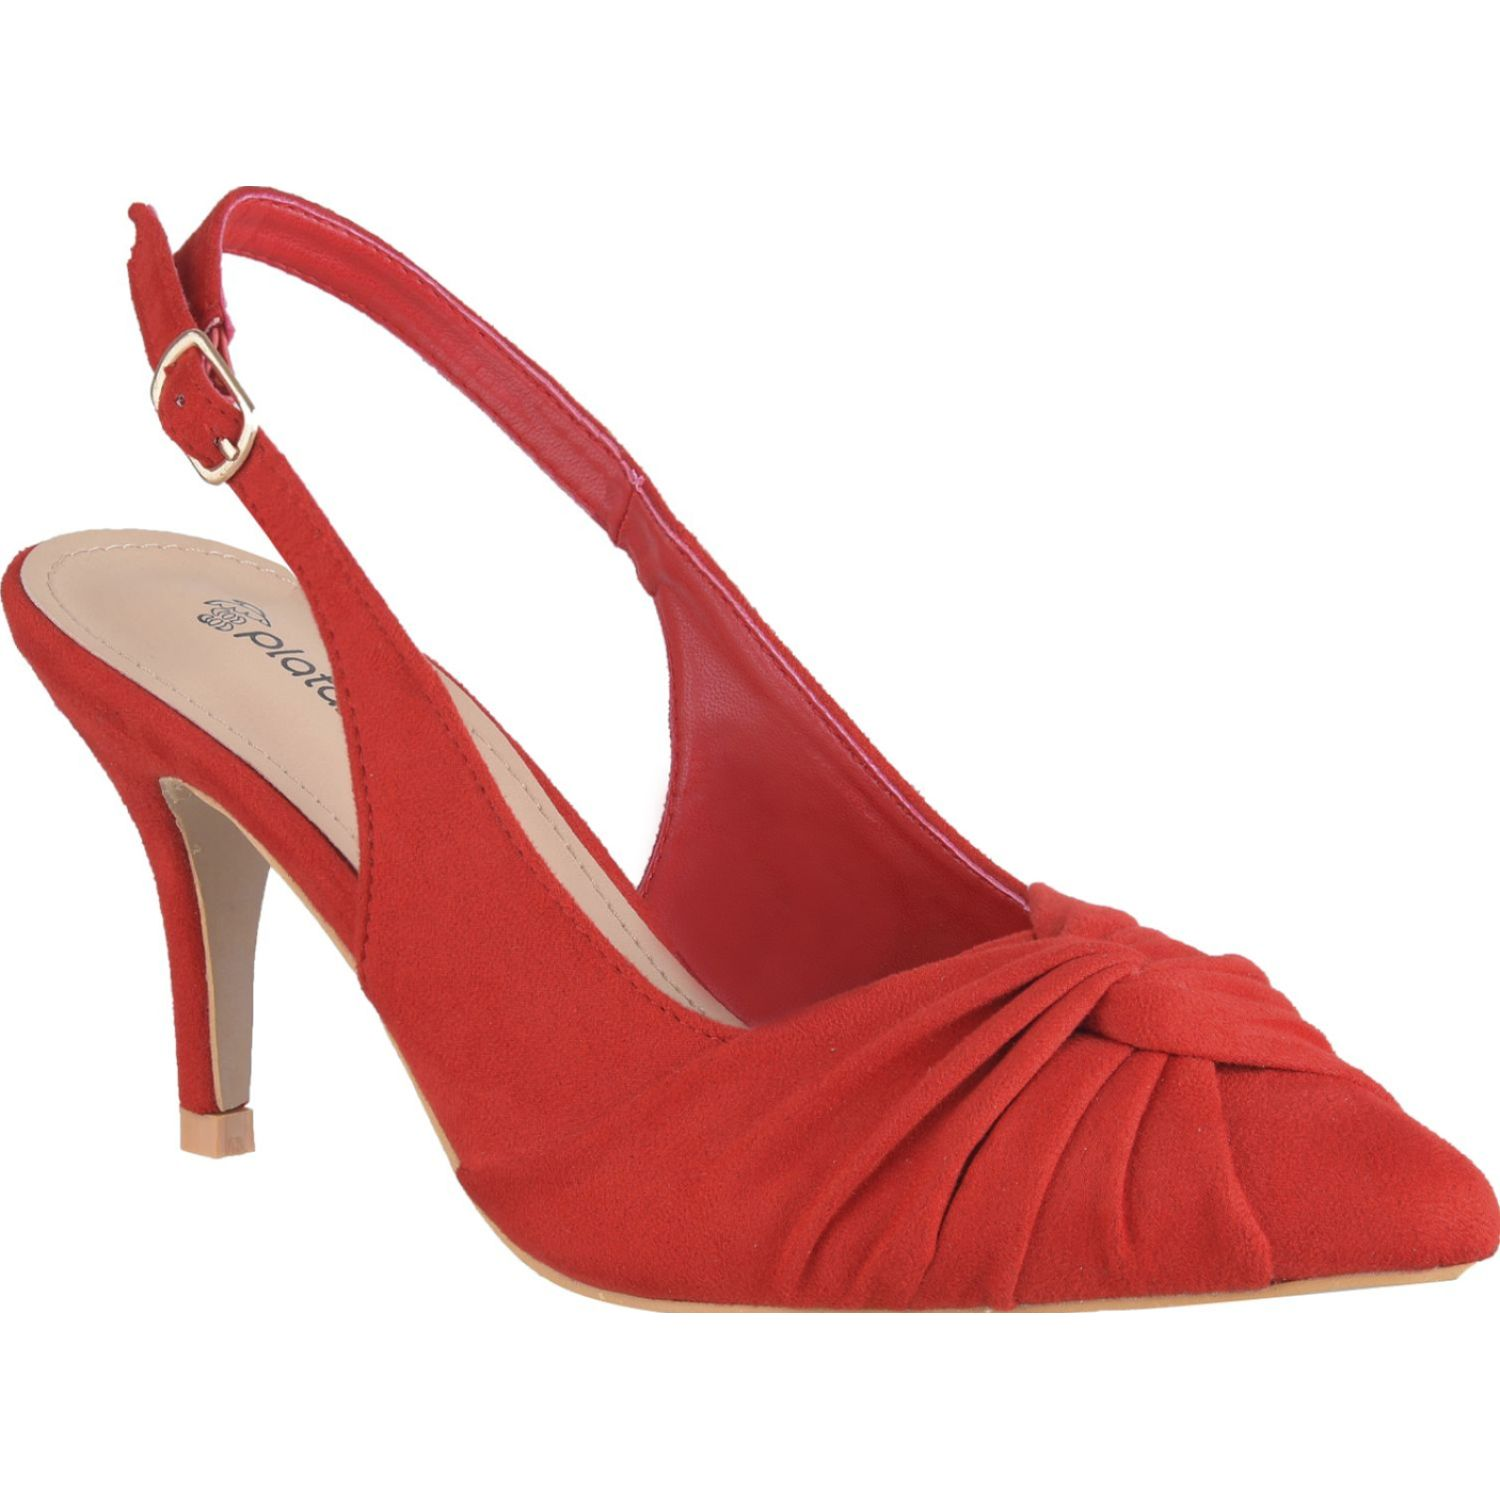 Platanitos cv 6501 Rojo Estiletos y Pumps